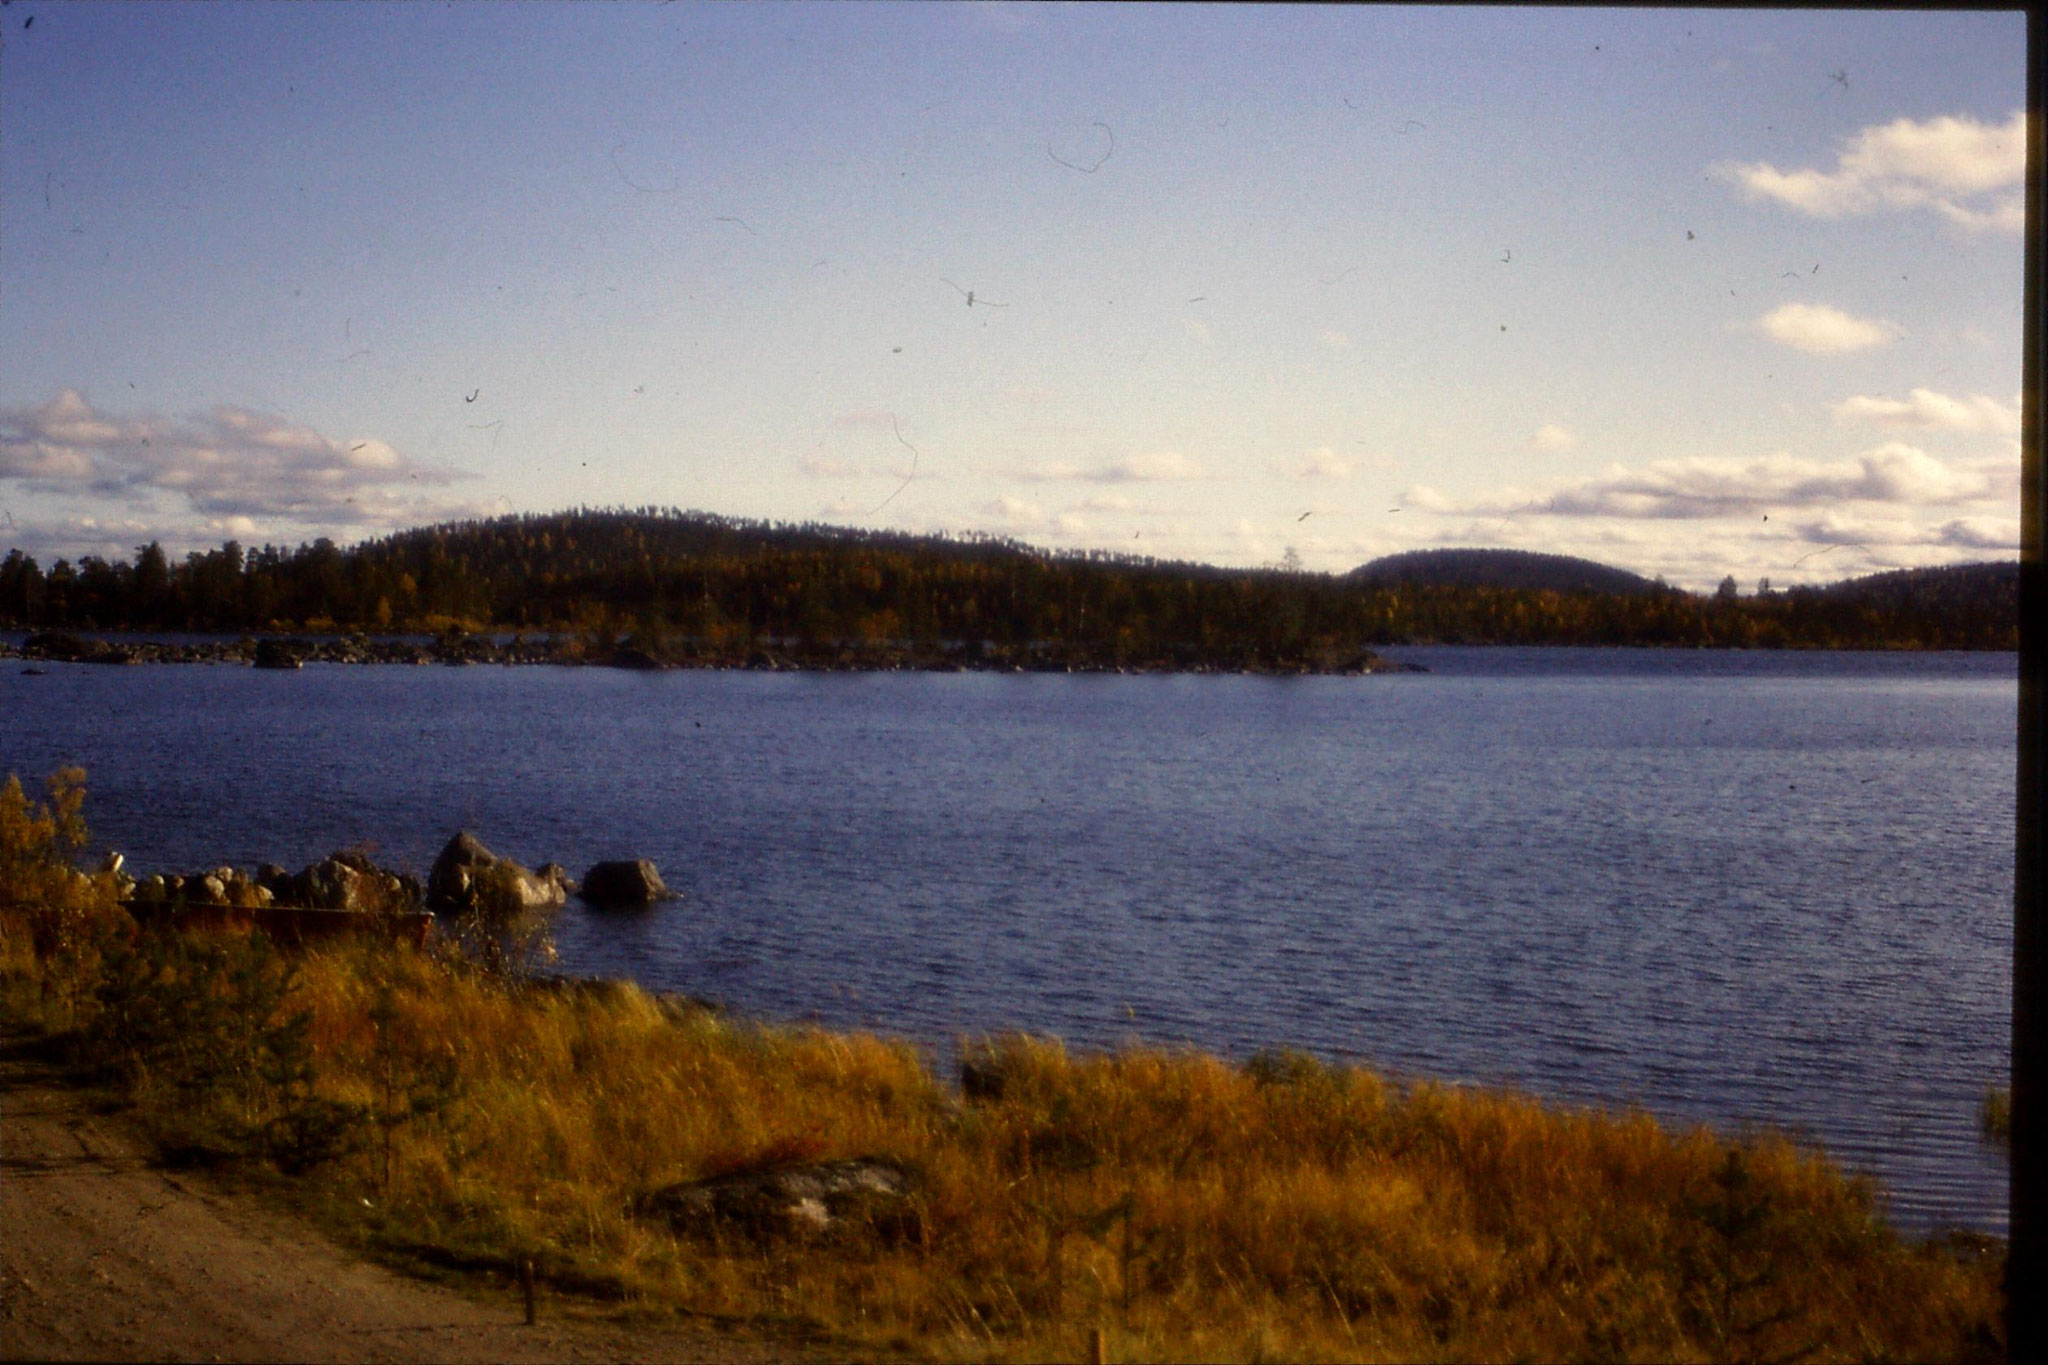 26/9/1988:30: on bus south of Inari